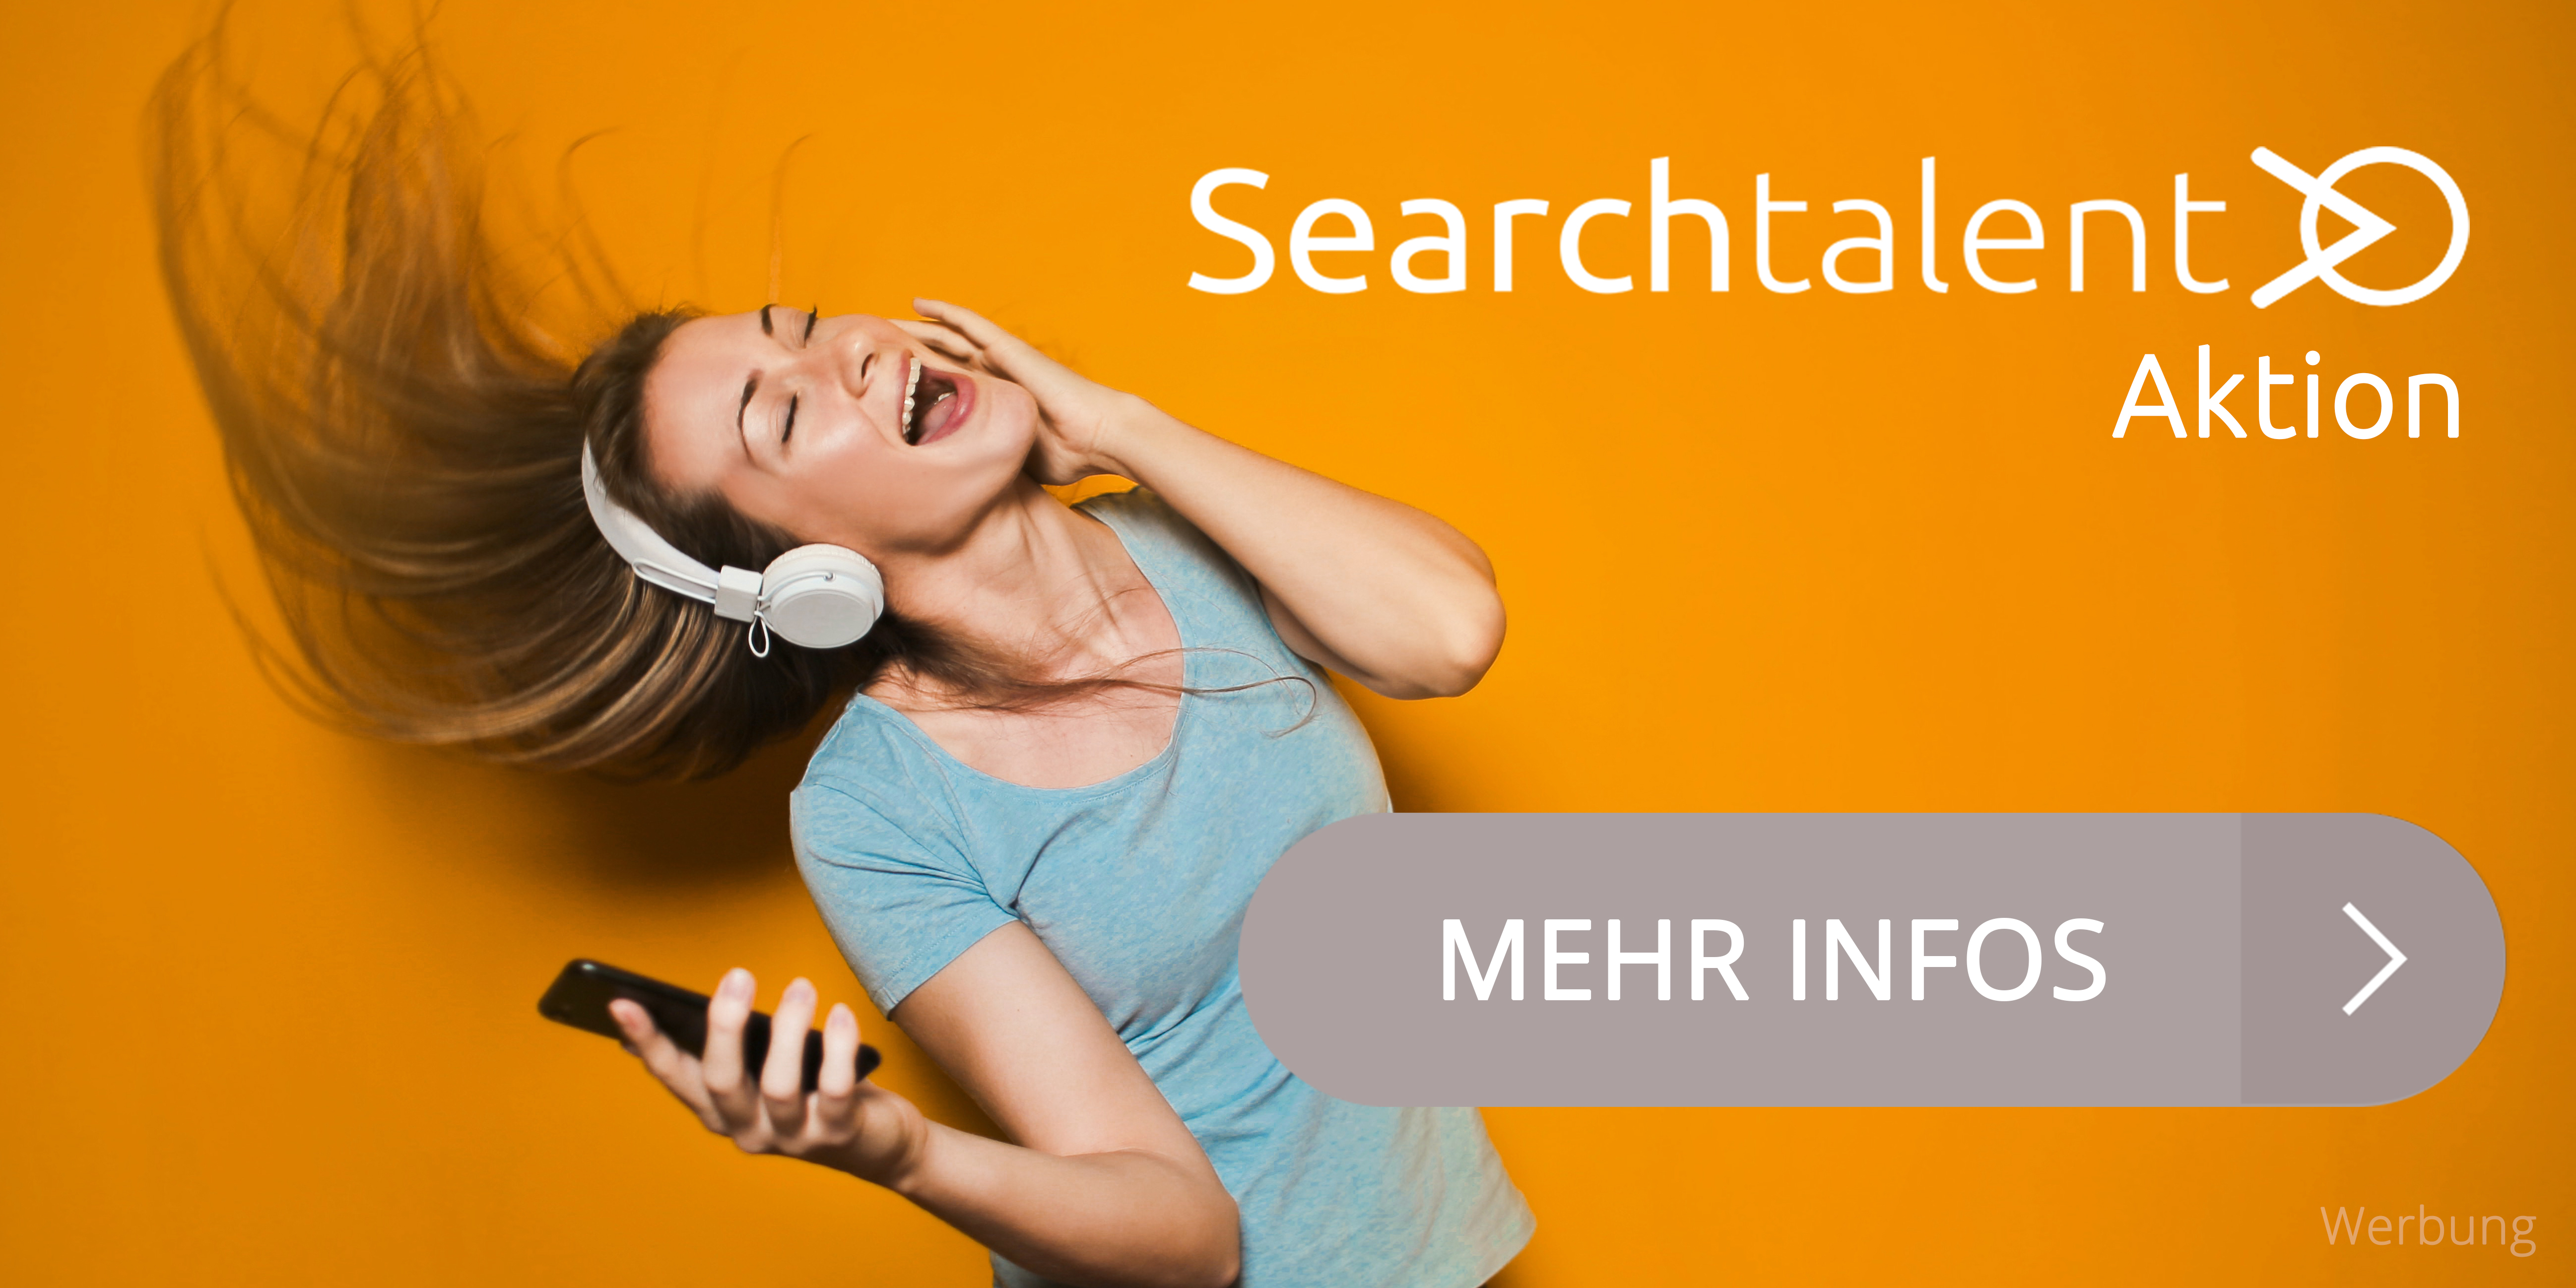 searchtalent-testen-aktion-podcast